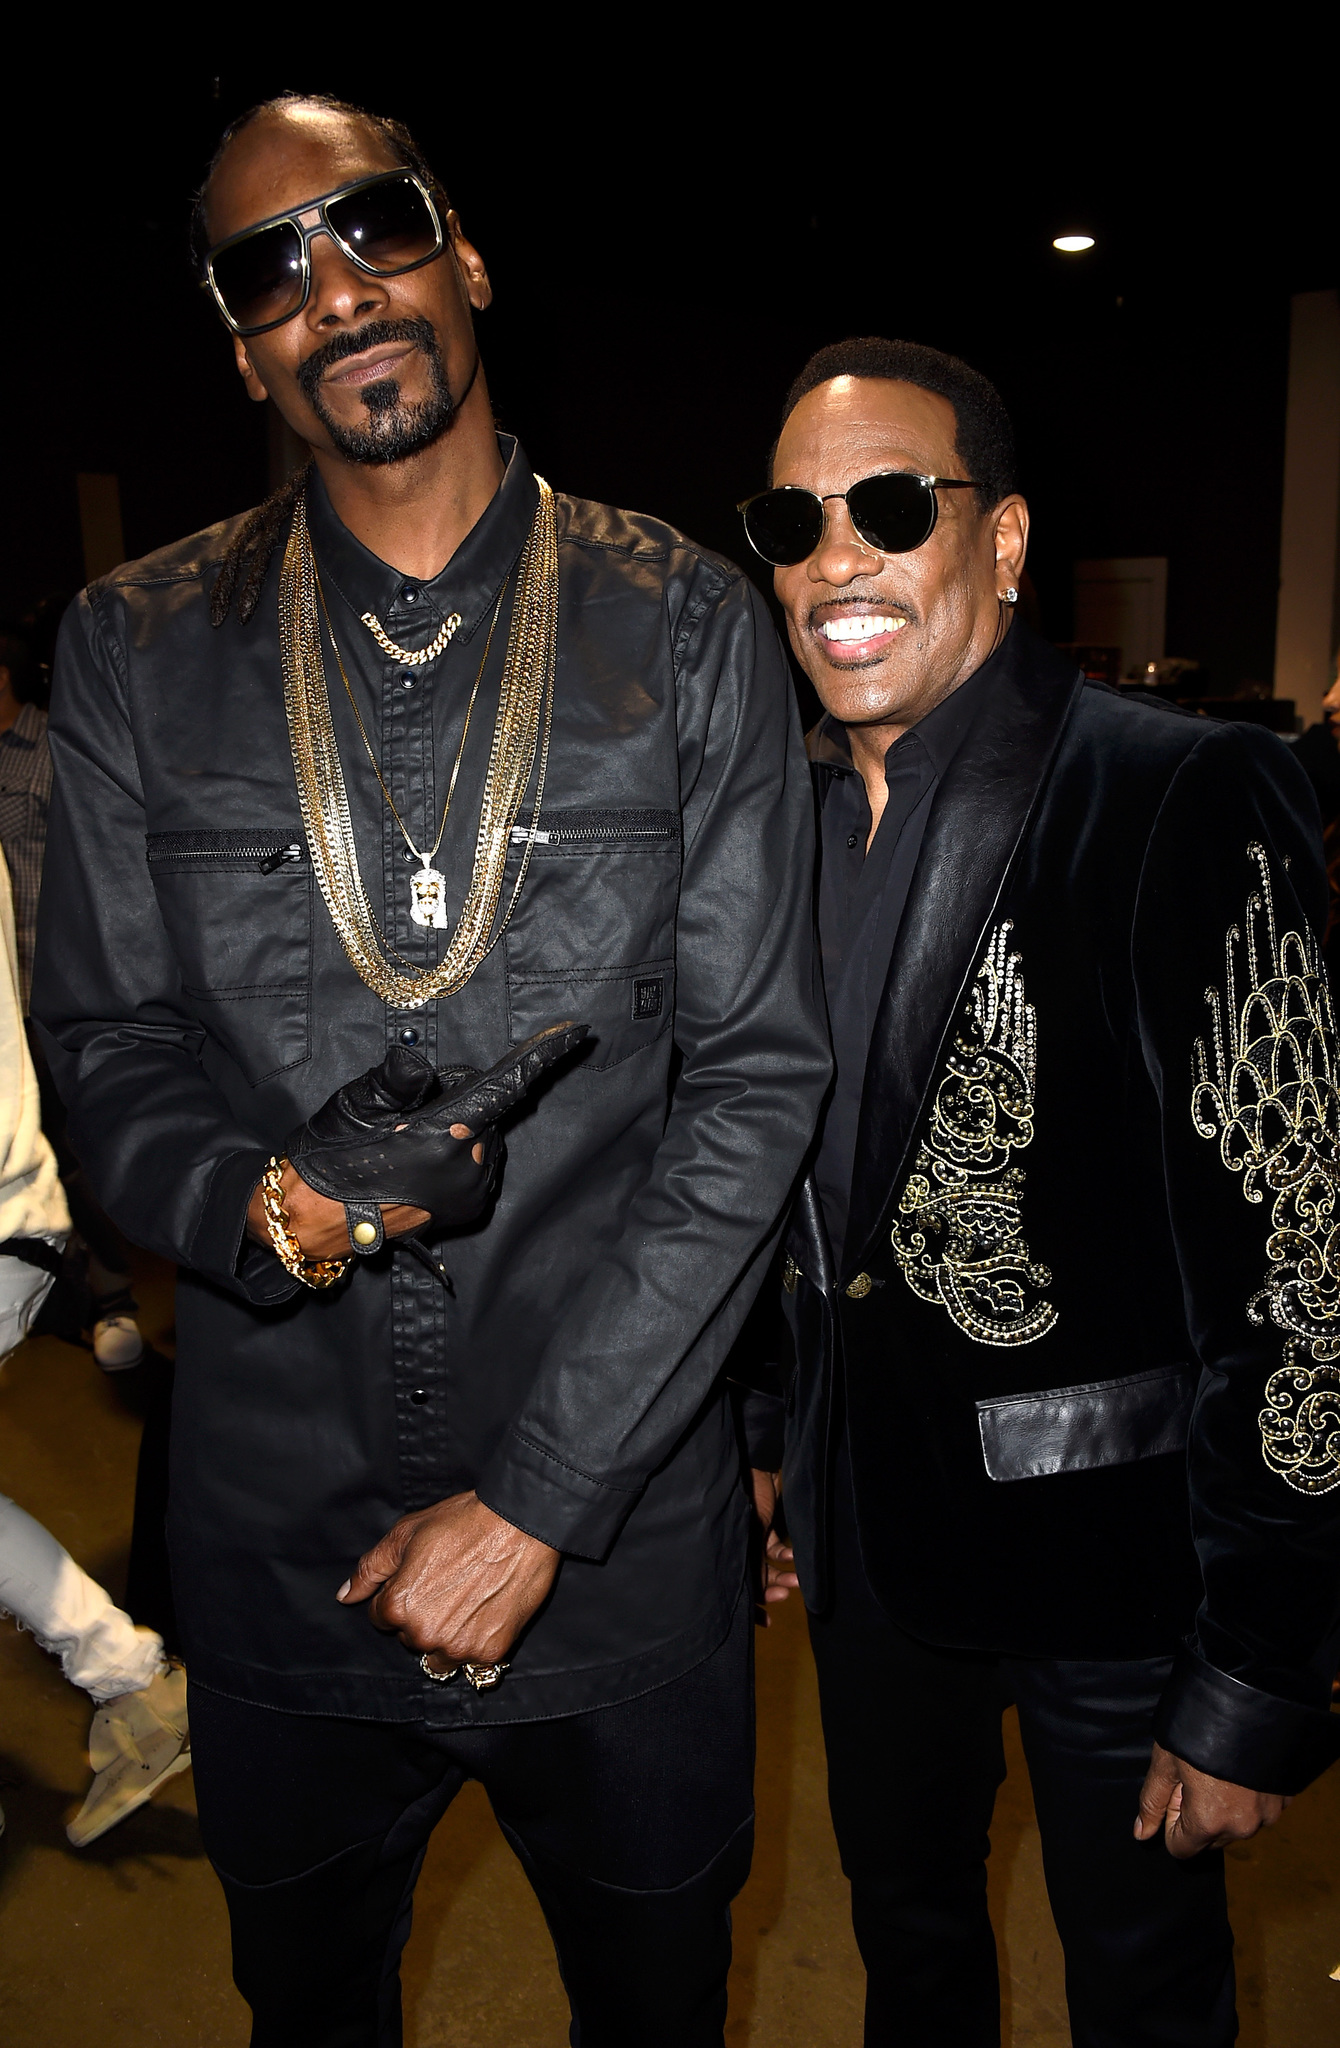 Snoop Dogg and Charlie Wilson at event of IHeartRadio Music Awards (2015)